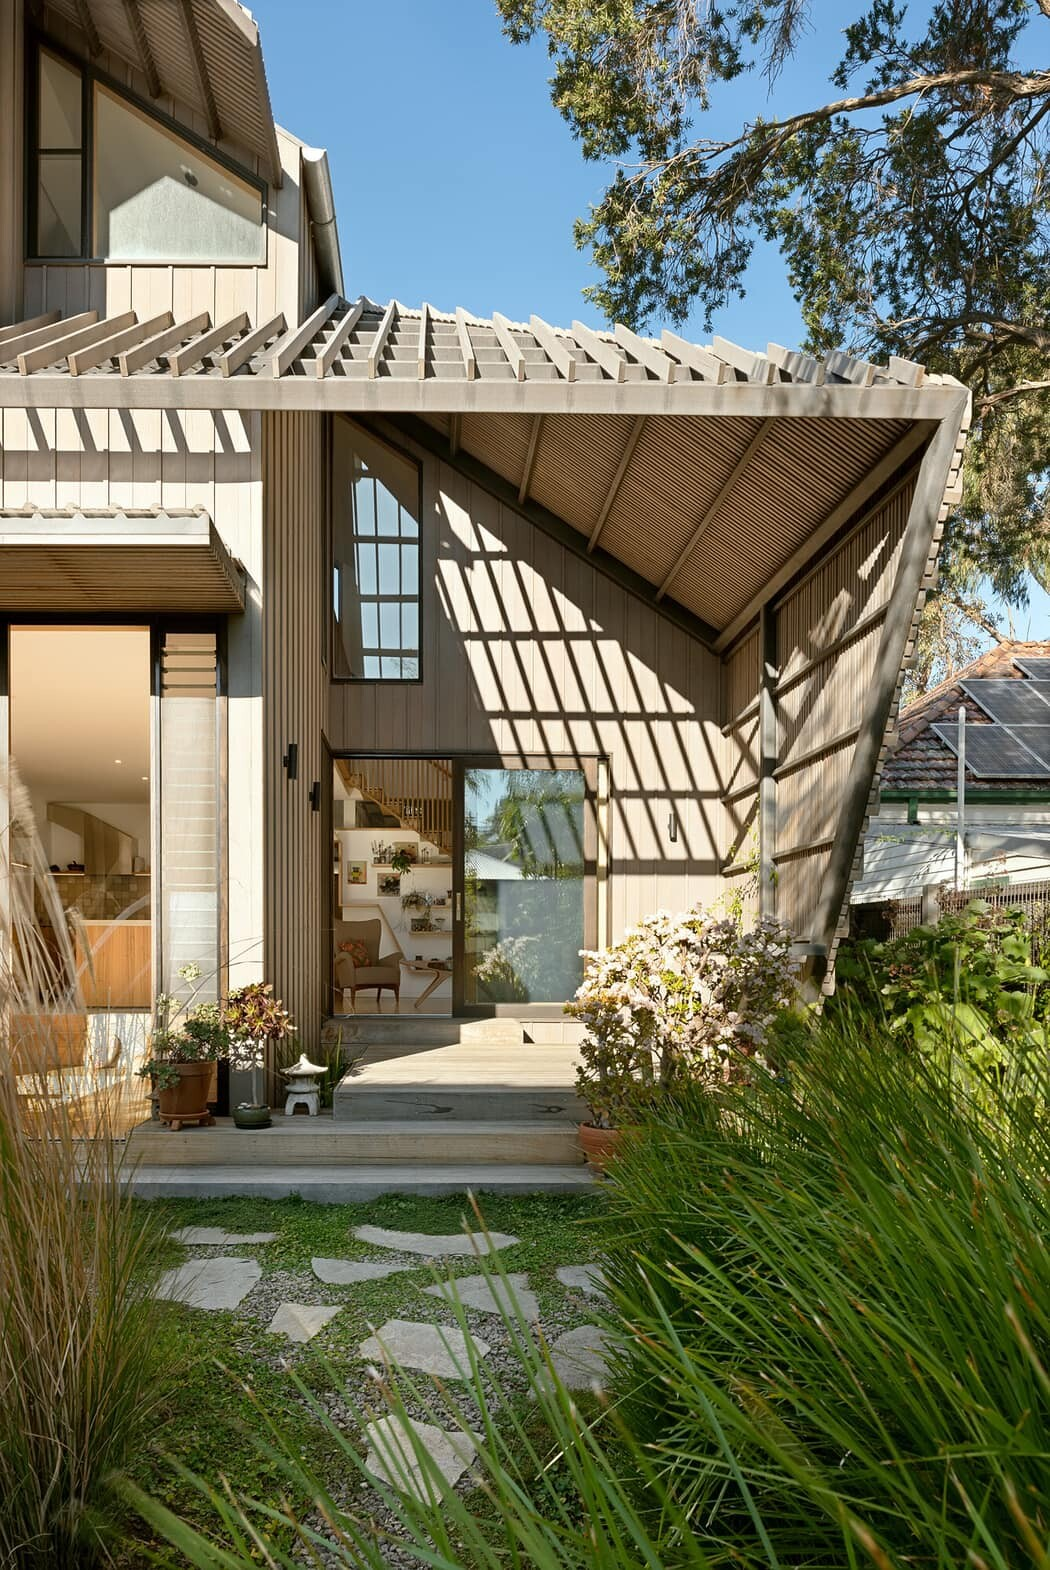 Art House & Studio, An Exploration in Restoration, Re-Use and Recycling